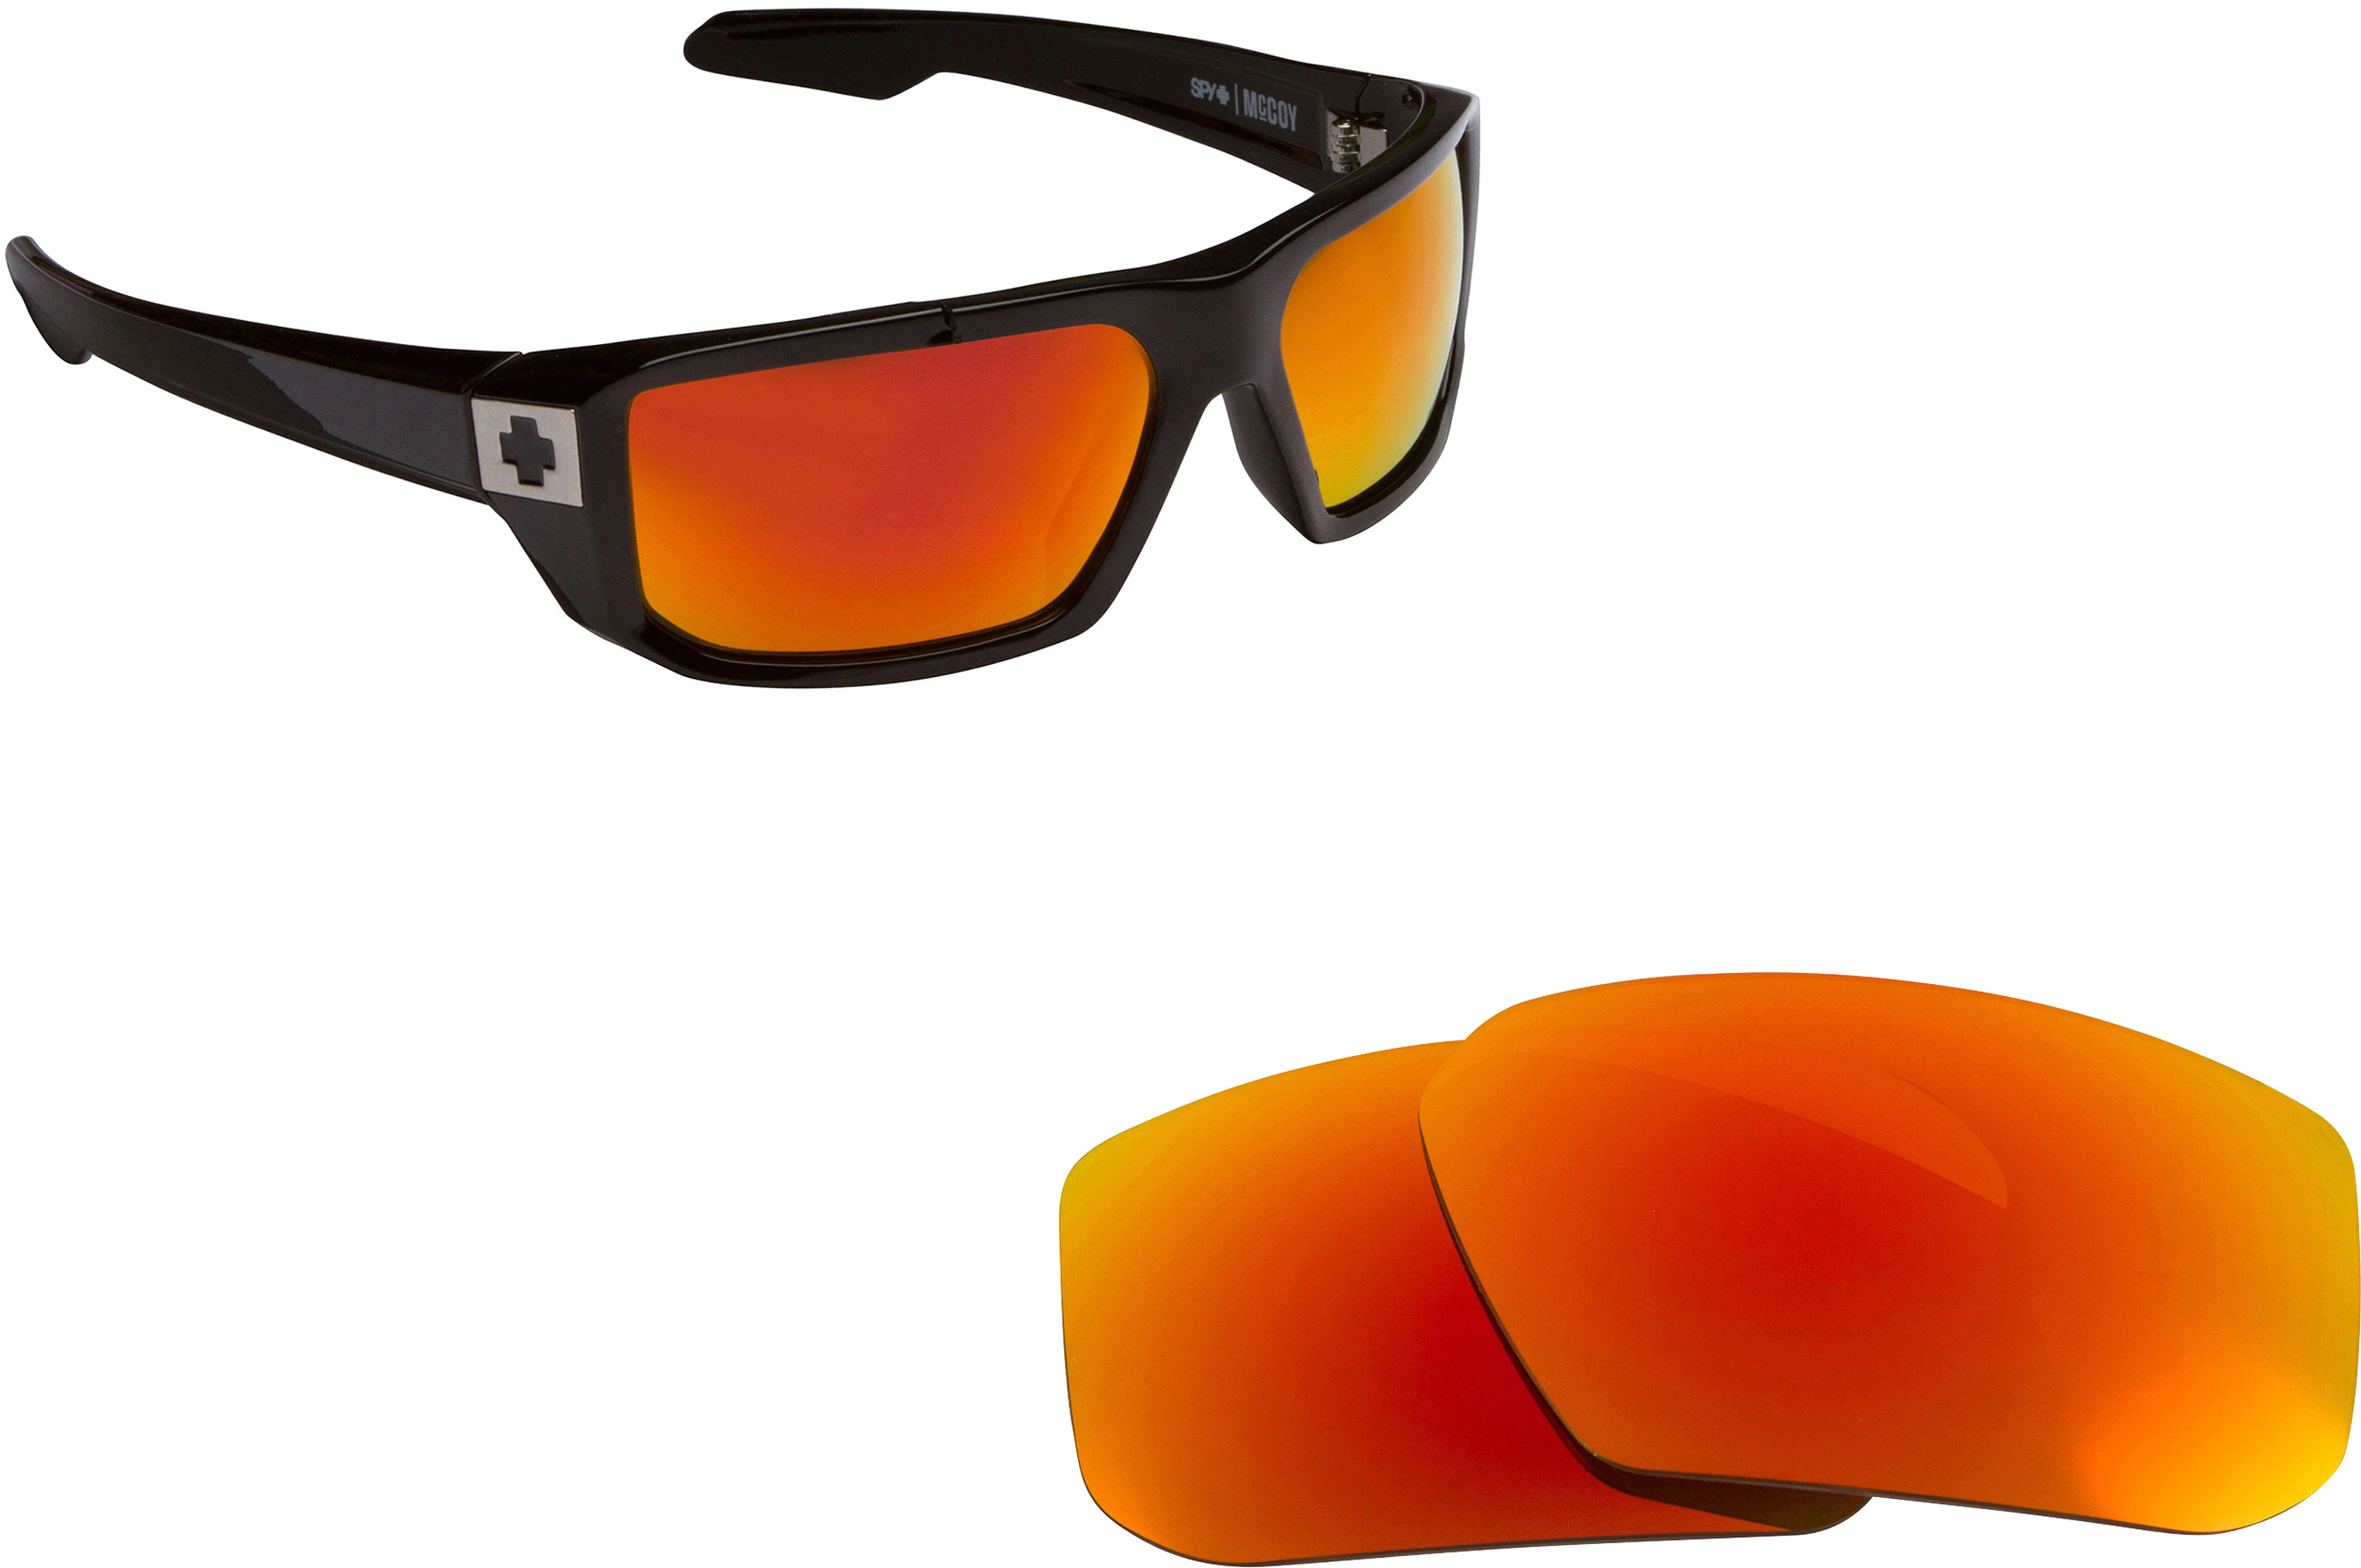 bc80159f40 Hielo Replacement Lenses by SEEK OPTICS to fit SPY OPTICS Sunglasses ...